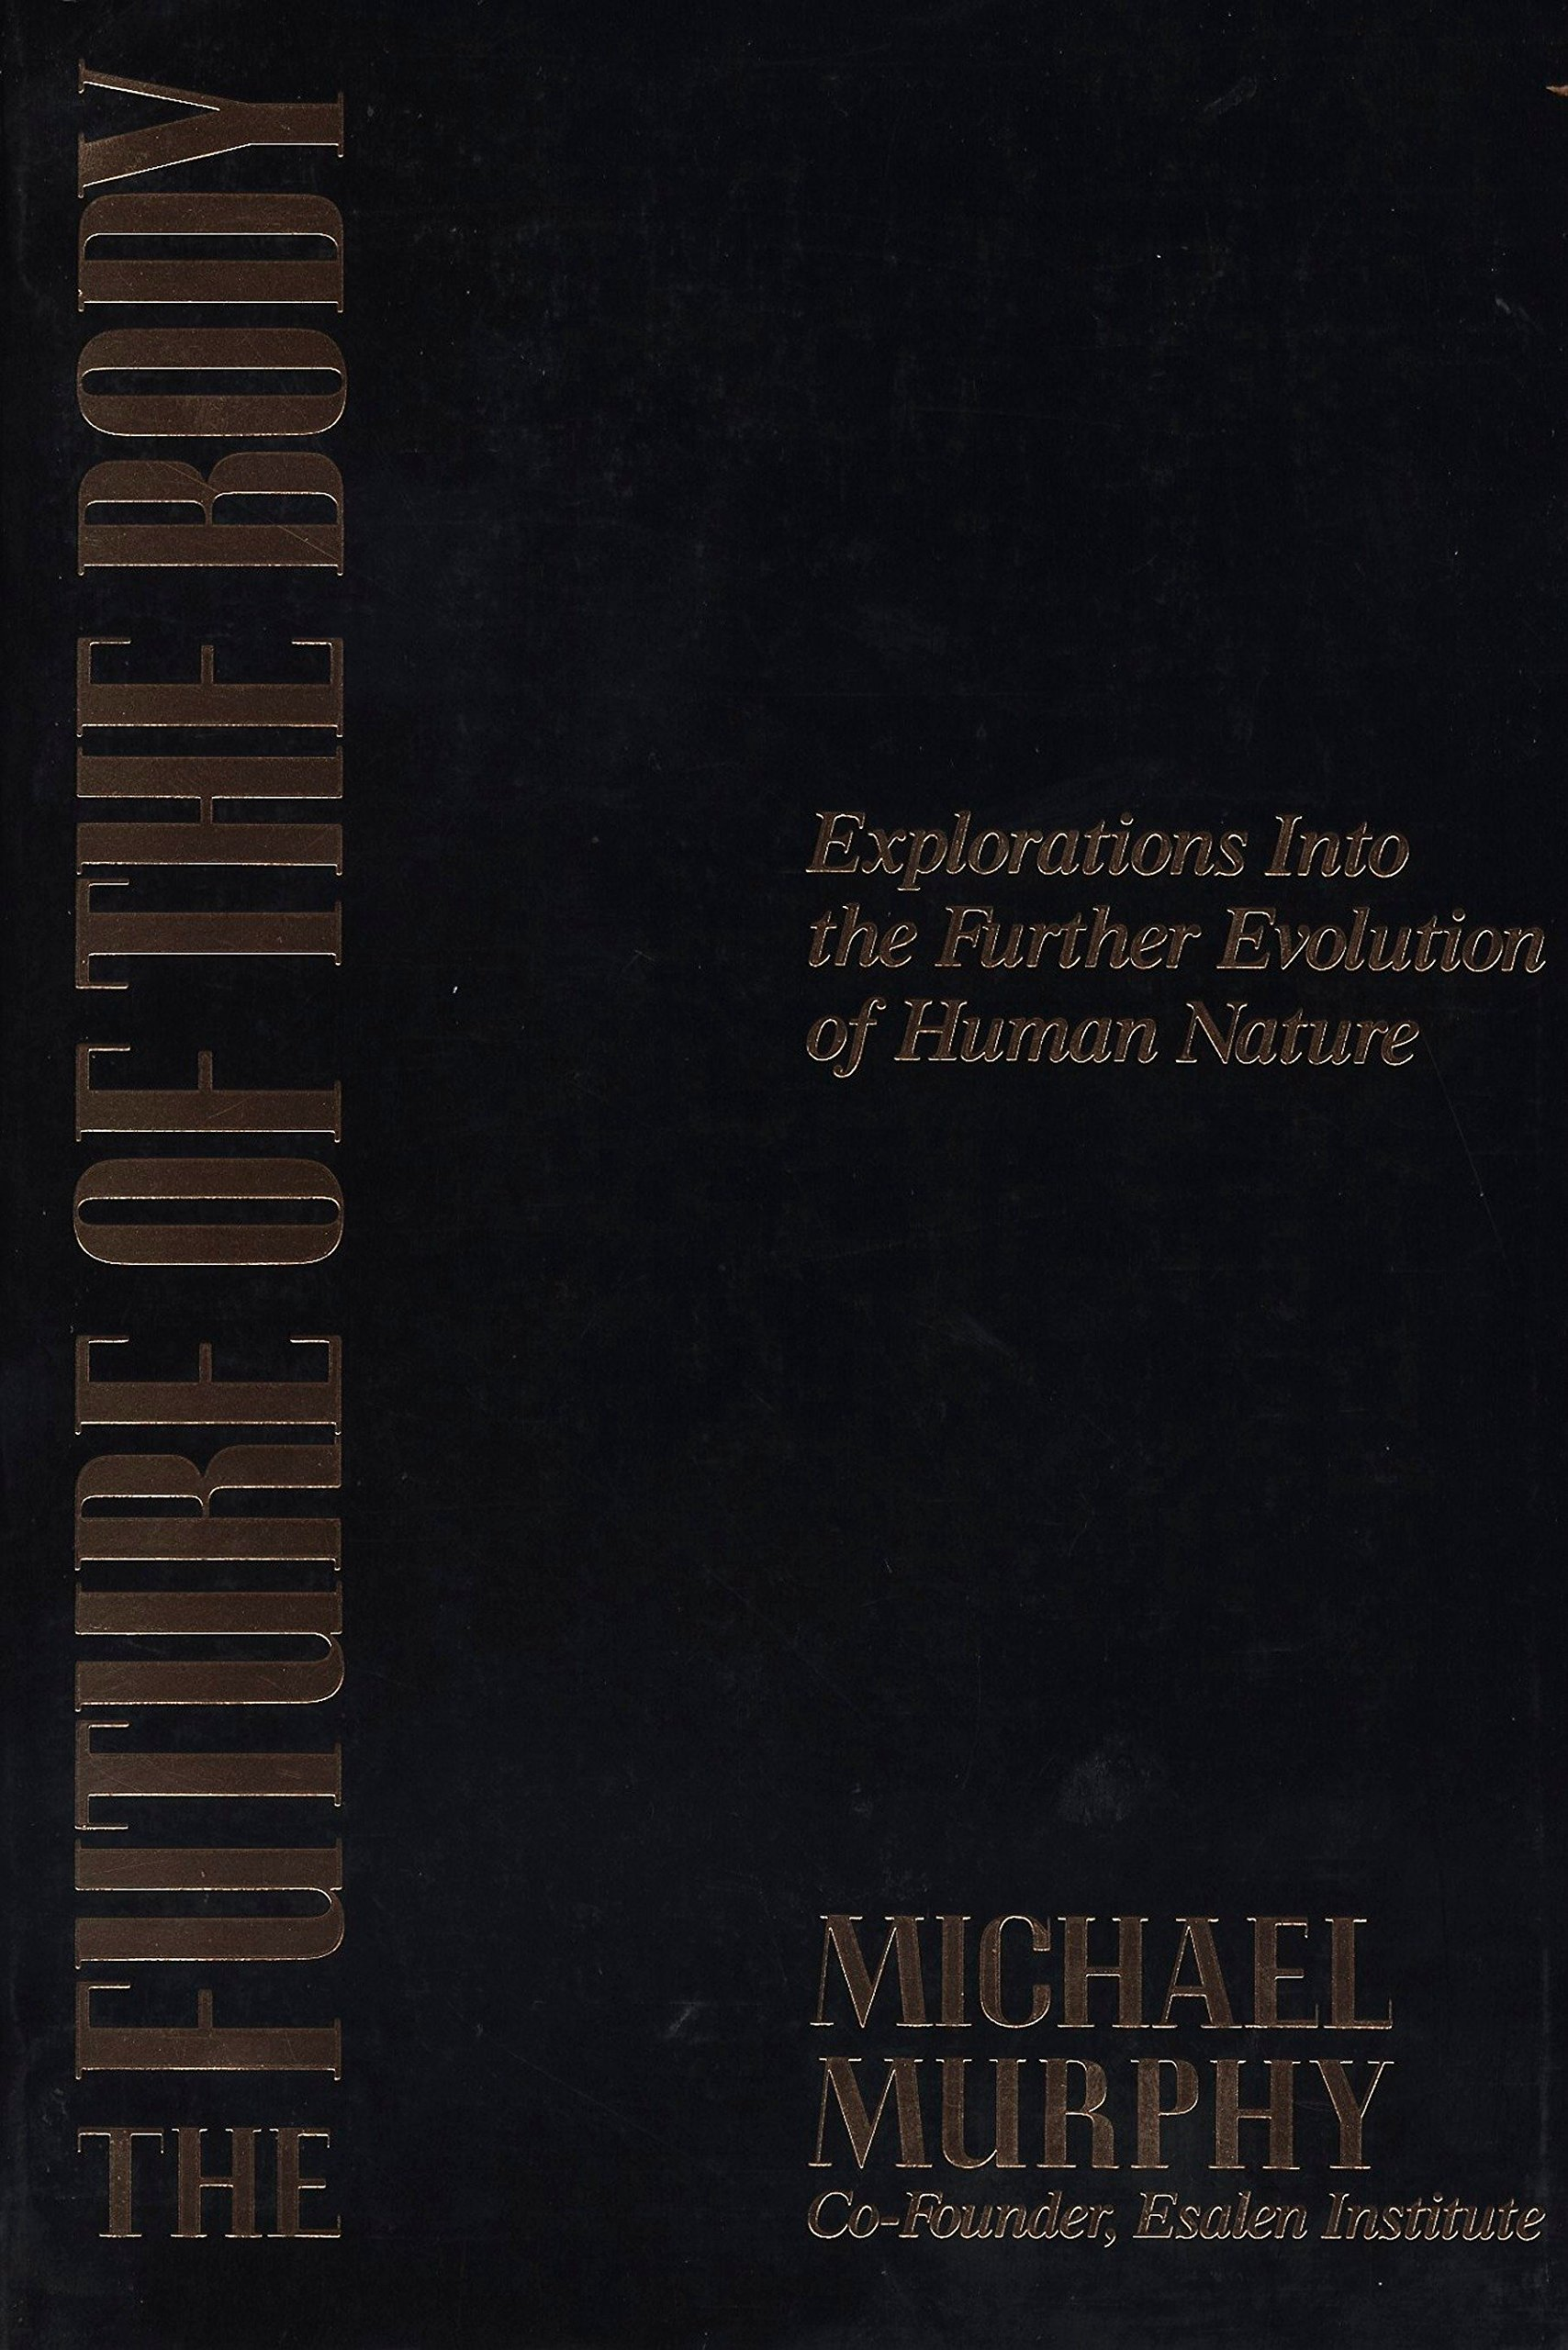 The Future of the Body: Explorations into the Further Evolution of Human Nature